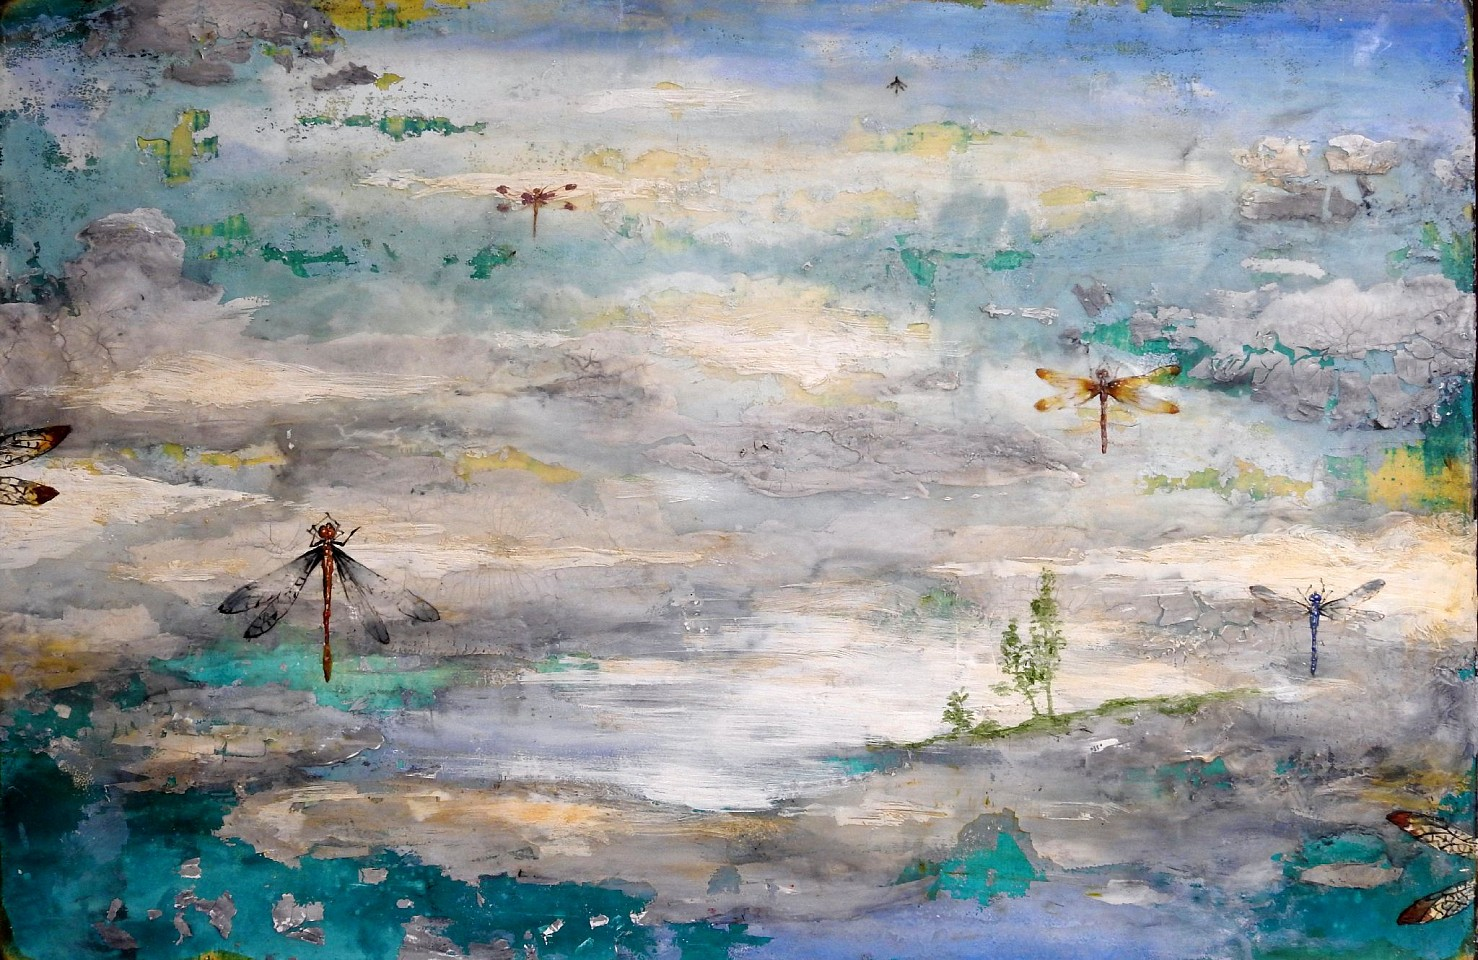 Chris Reilly, Elysium 2019, Encaustic & Mixed Media on Panel